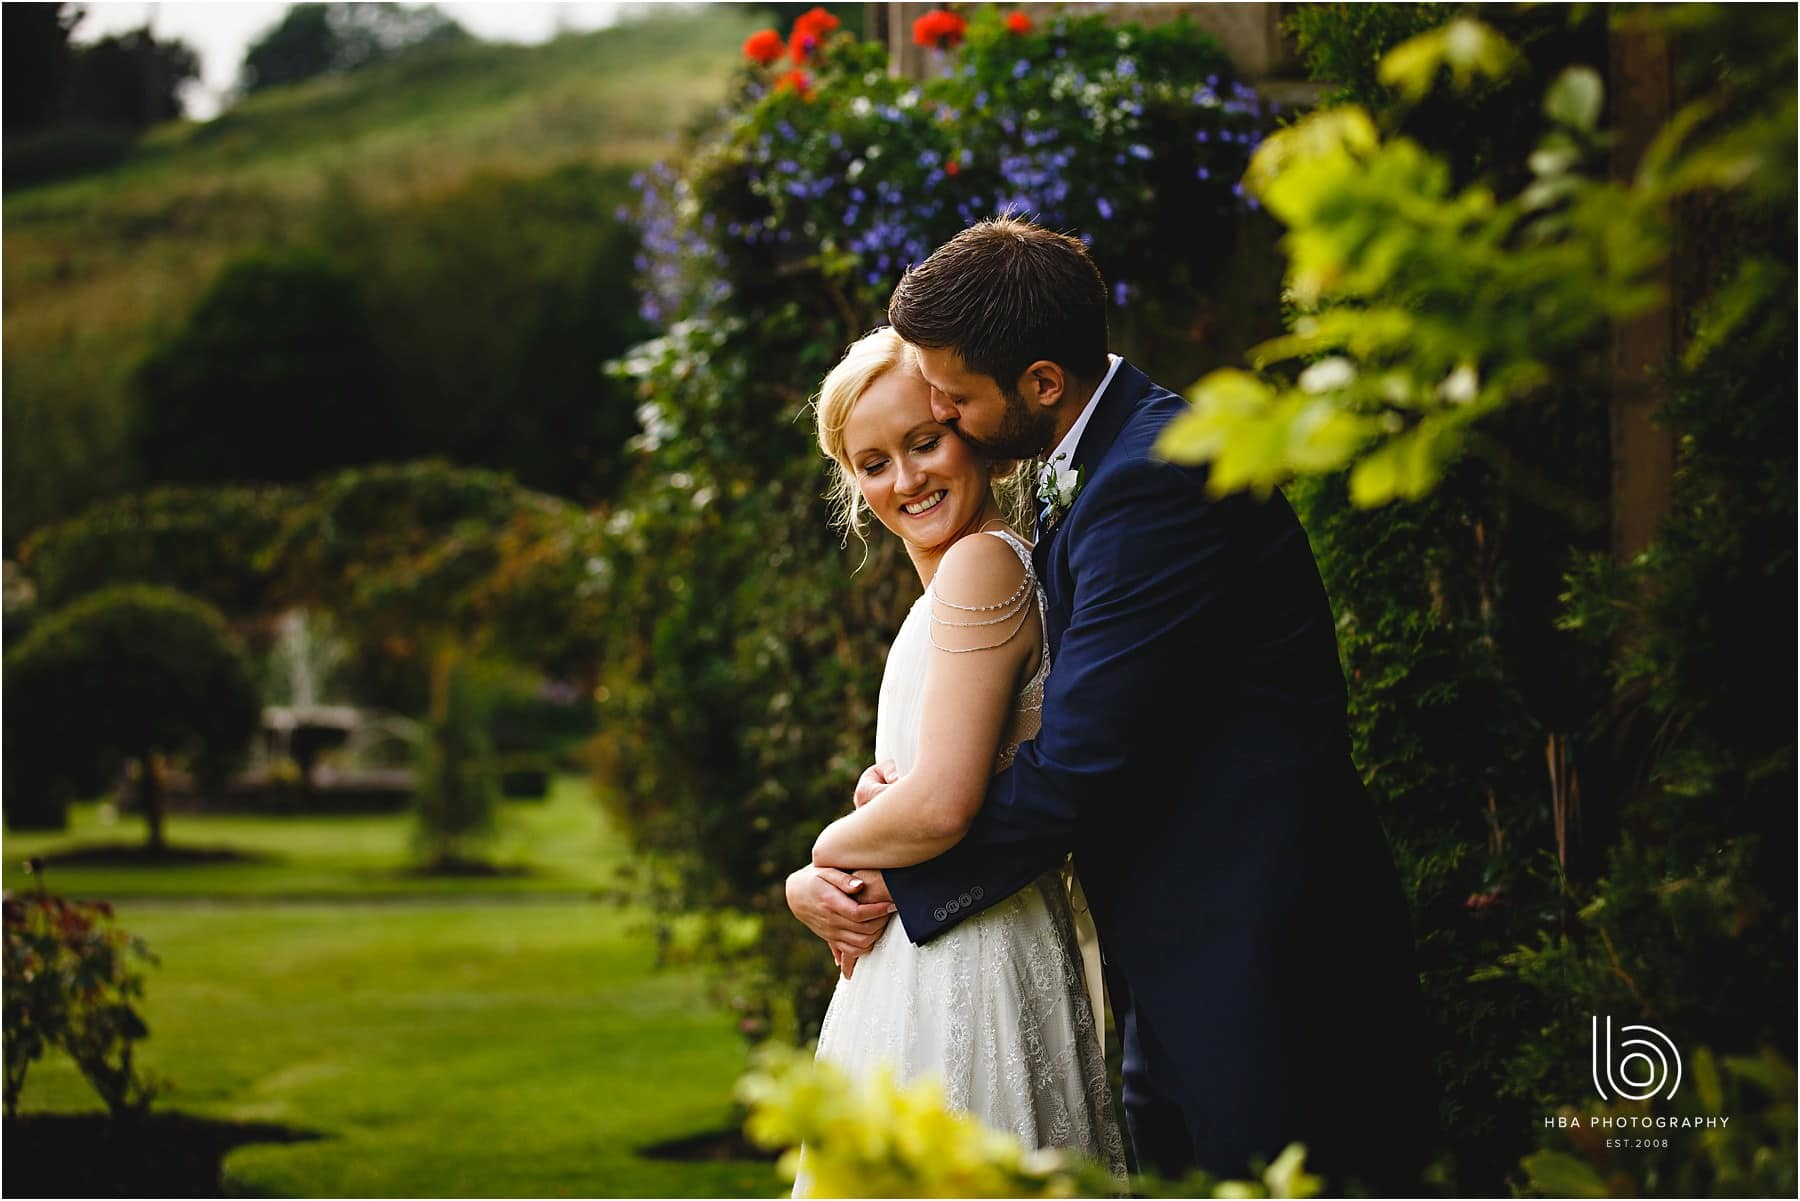 the bride & groom in the gardens at cressbrook hall in derbyshire